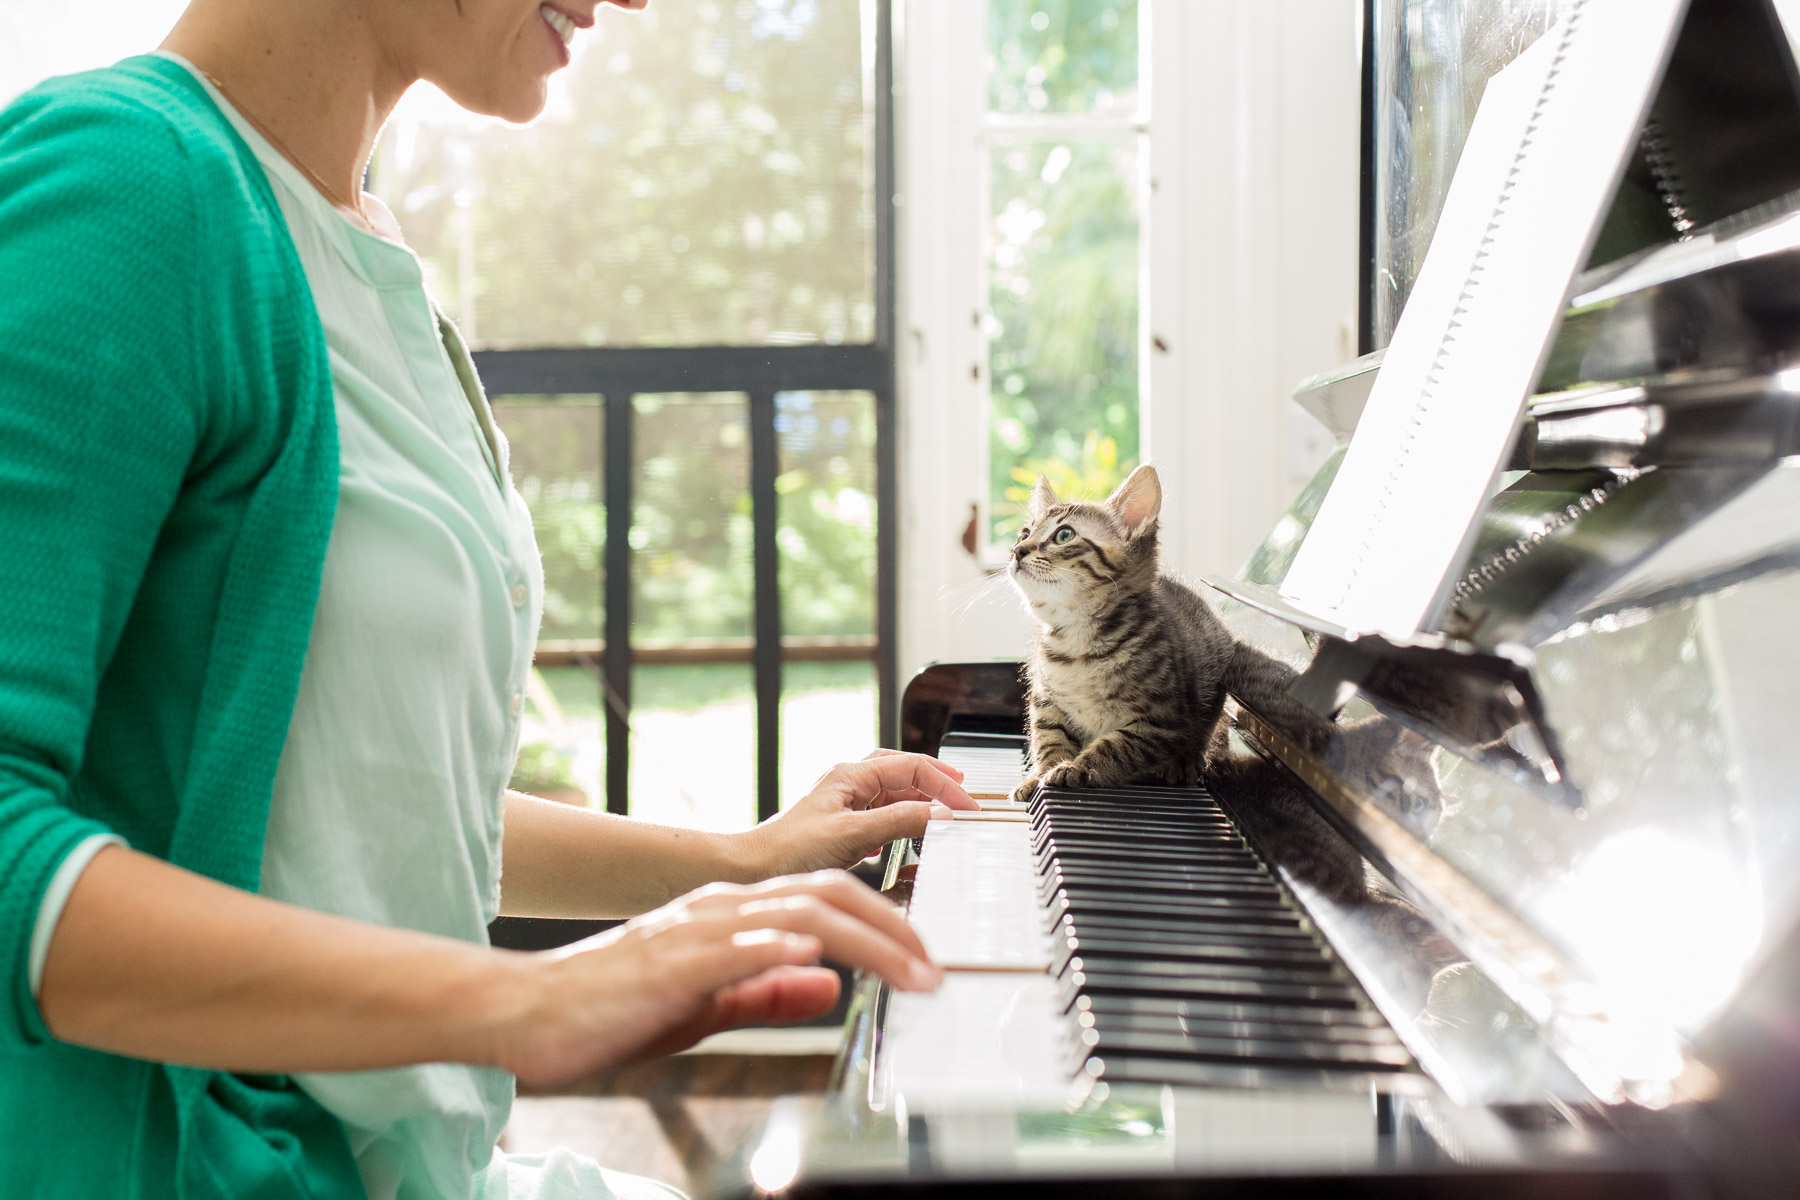 kitty-on-piano-keyboards.jpg